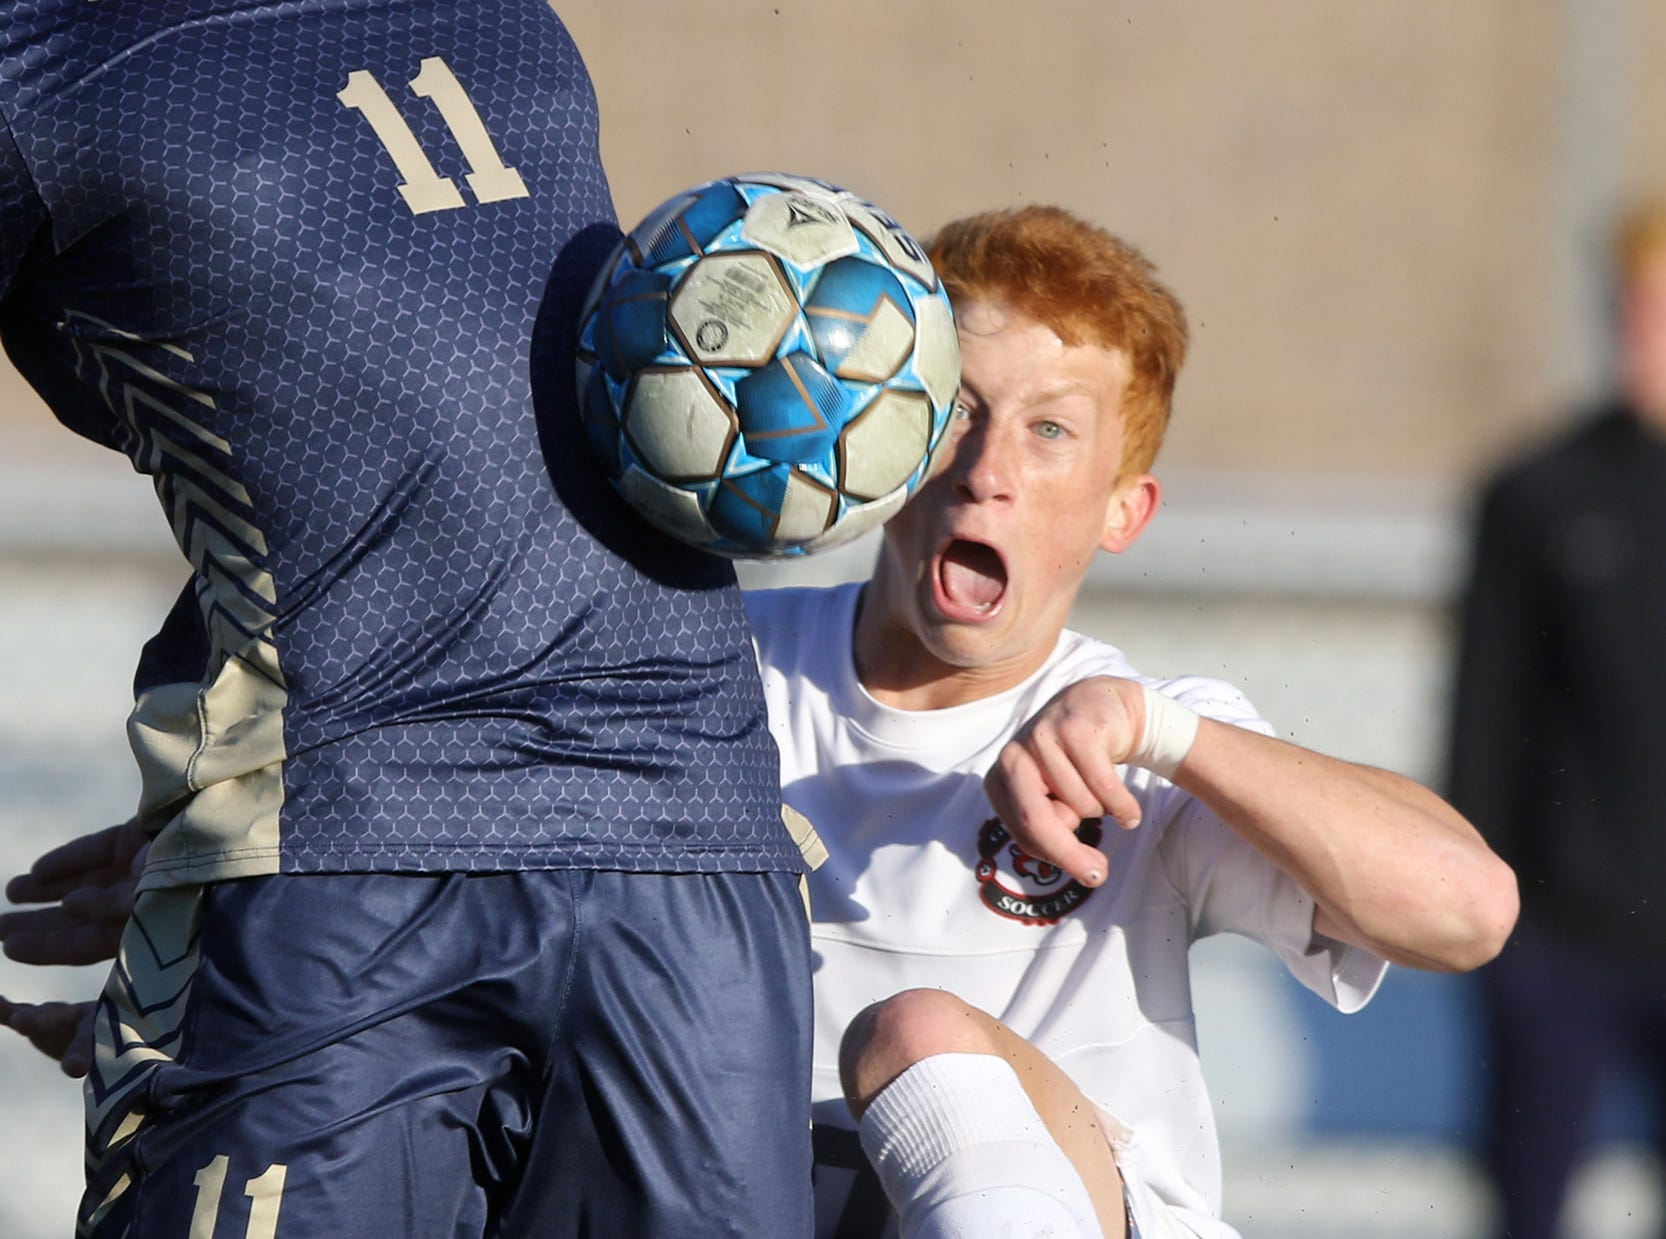 Ben Zakowski heads the ball in the second half while being defended by Brendan Bussiere.Pedota POY 2018